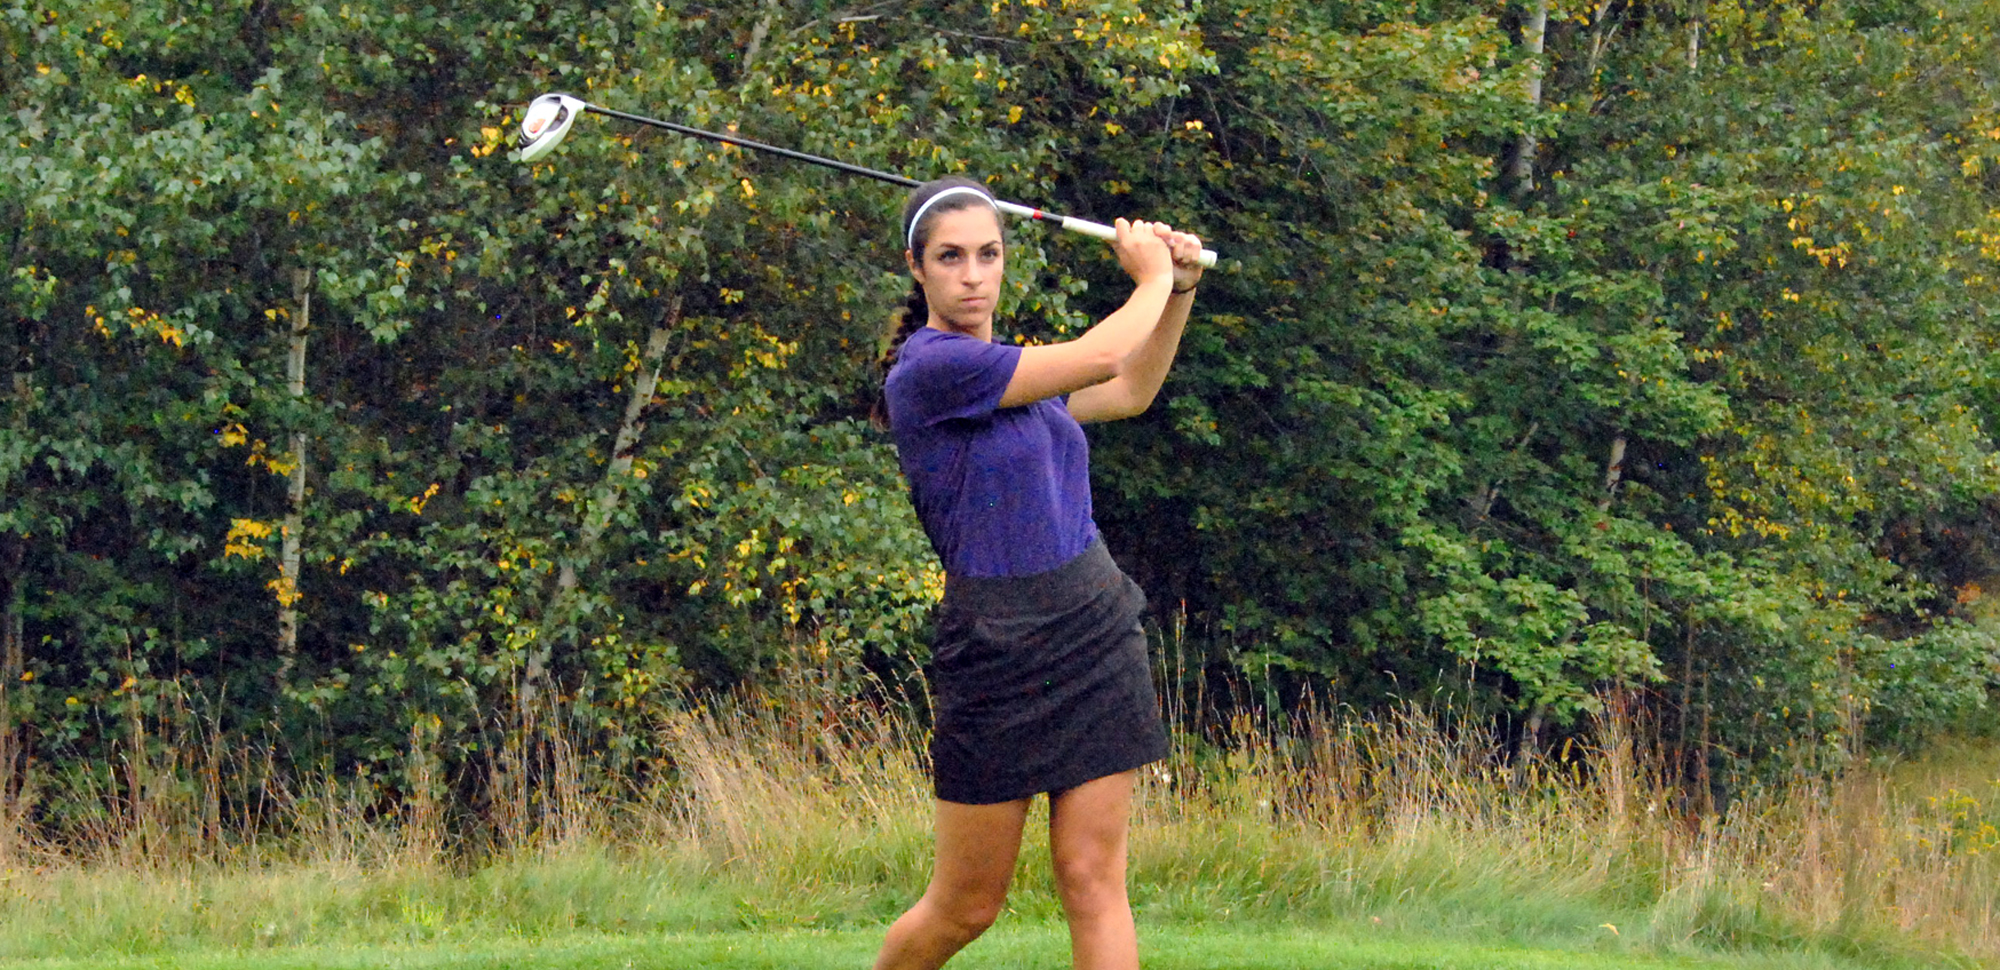 Senior Katie Allen had the first eagle in University of Scranton women's golf history on Saturday.